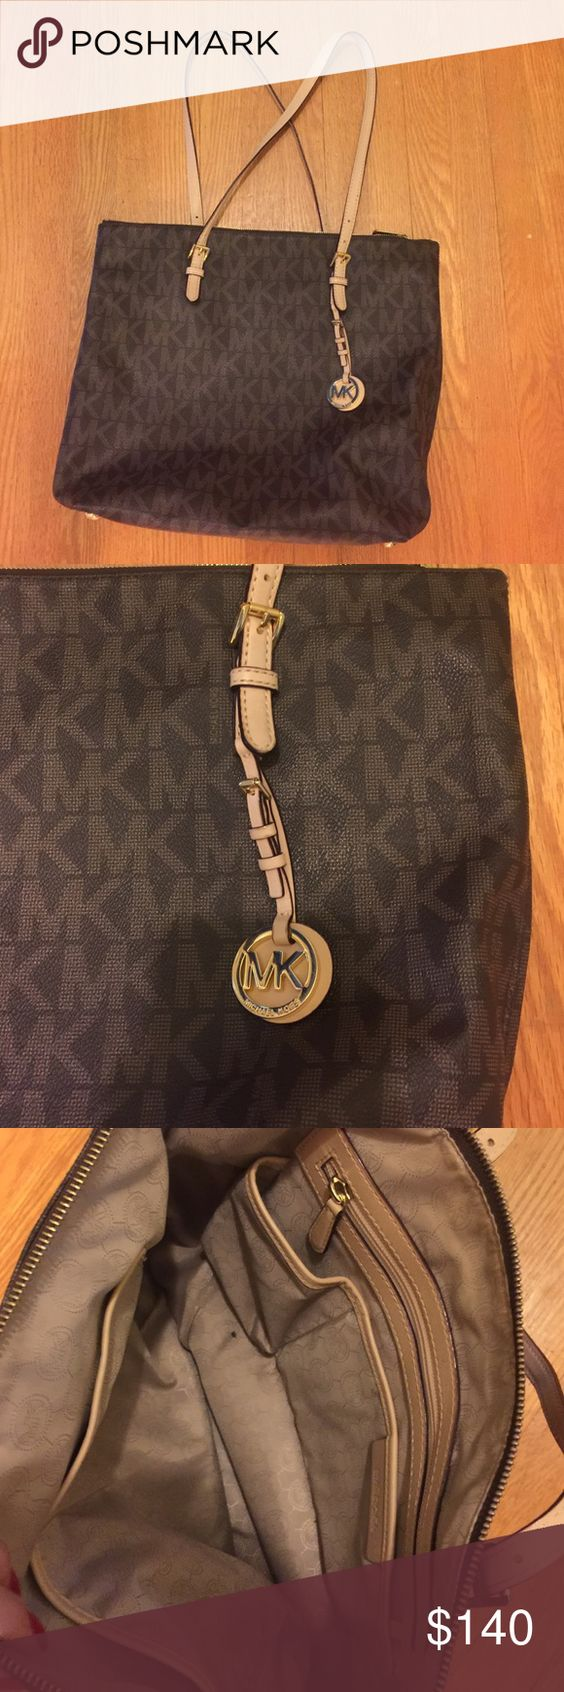 MK Purse Like new. Great condition. Only one little mark on the inside of the bag. Michael Kors Bags Shoulder Bags